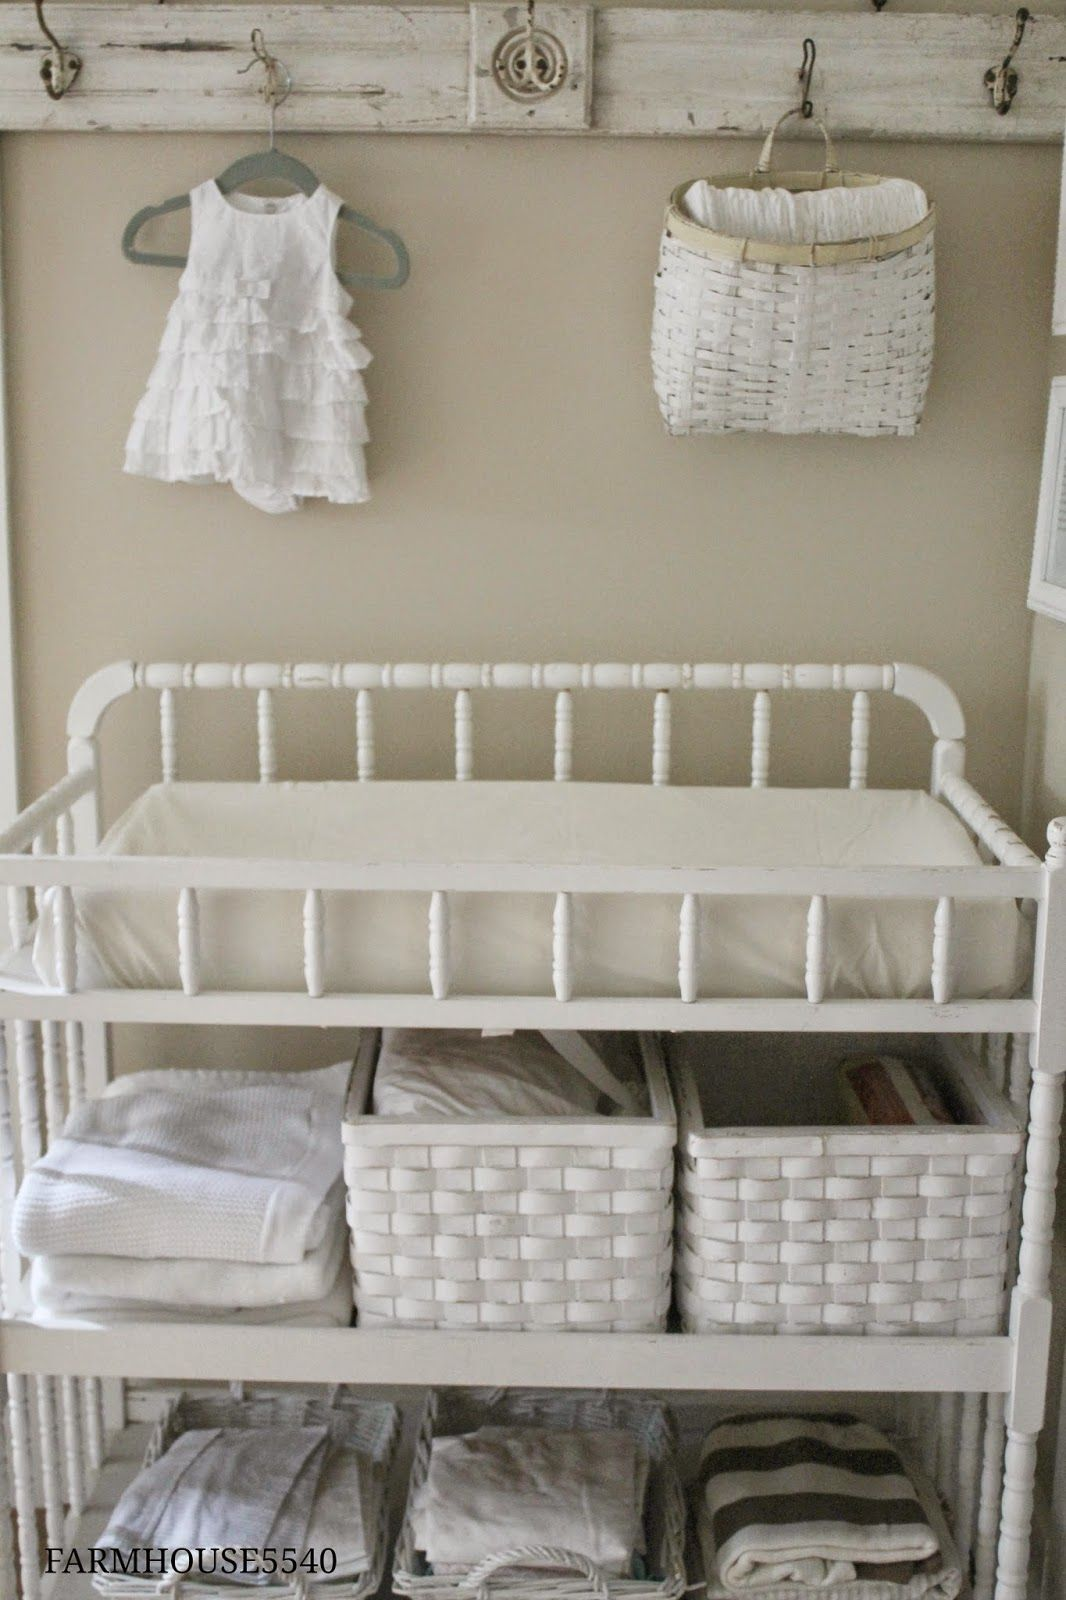 Hang Items Above Changing Table. FARMHOUSE 5540: Babyu0027s Room Part Two